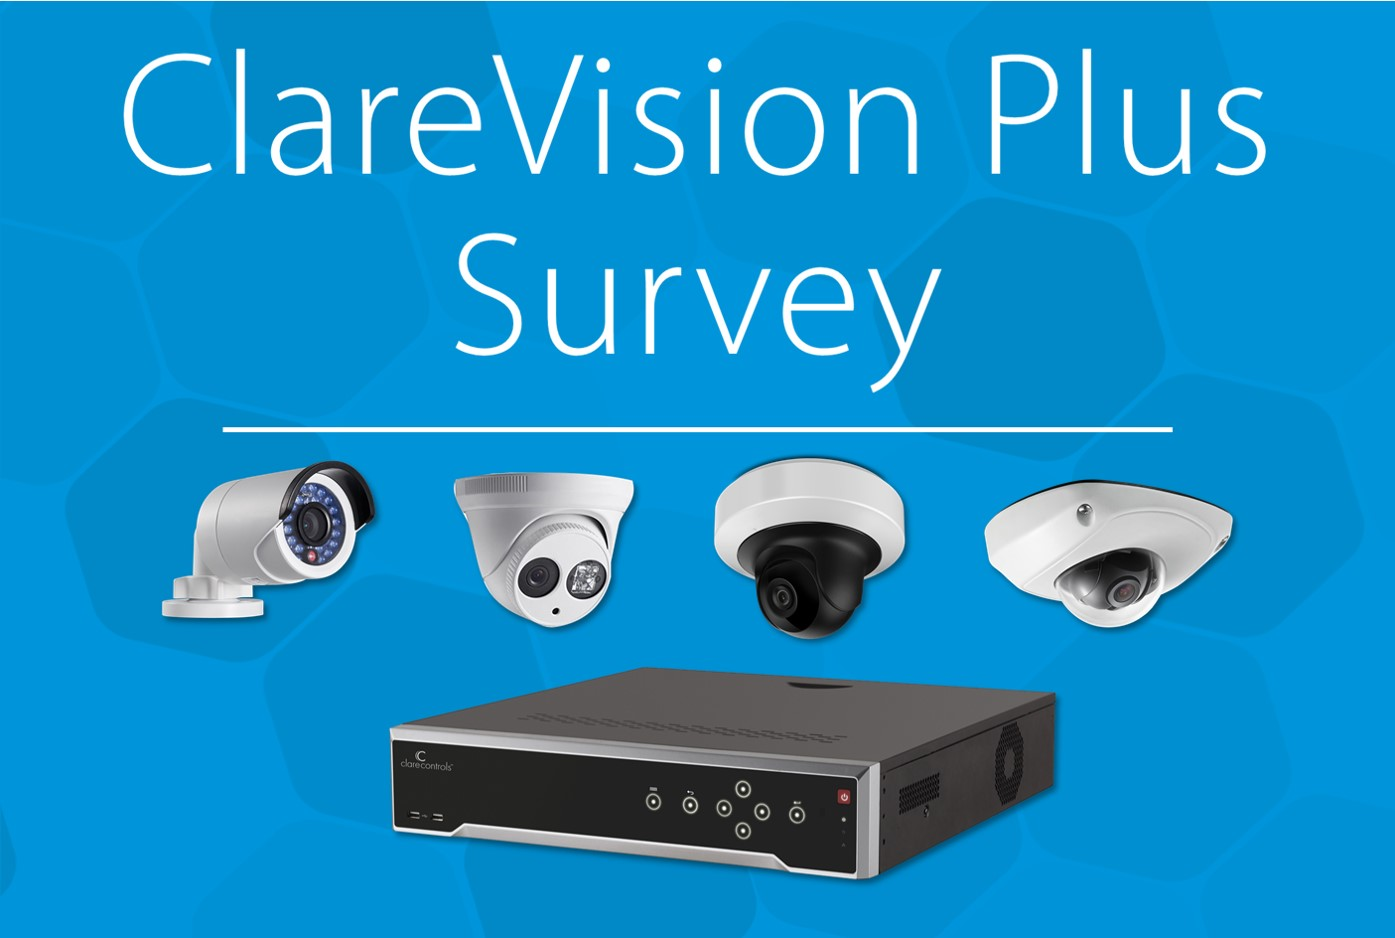 Let Us Know Your Thoughts On ClareVision Plus